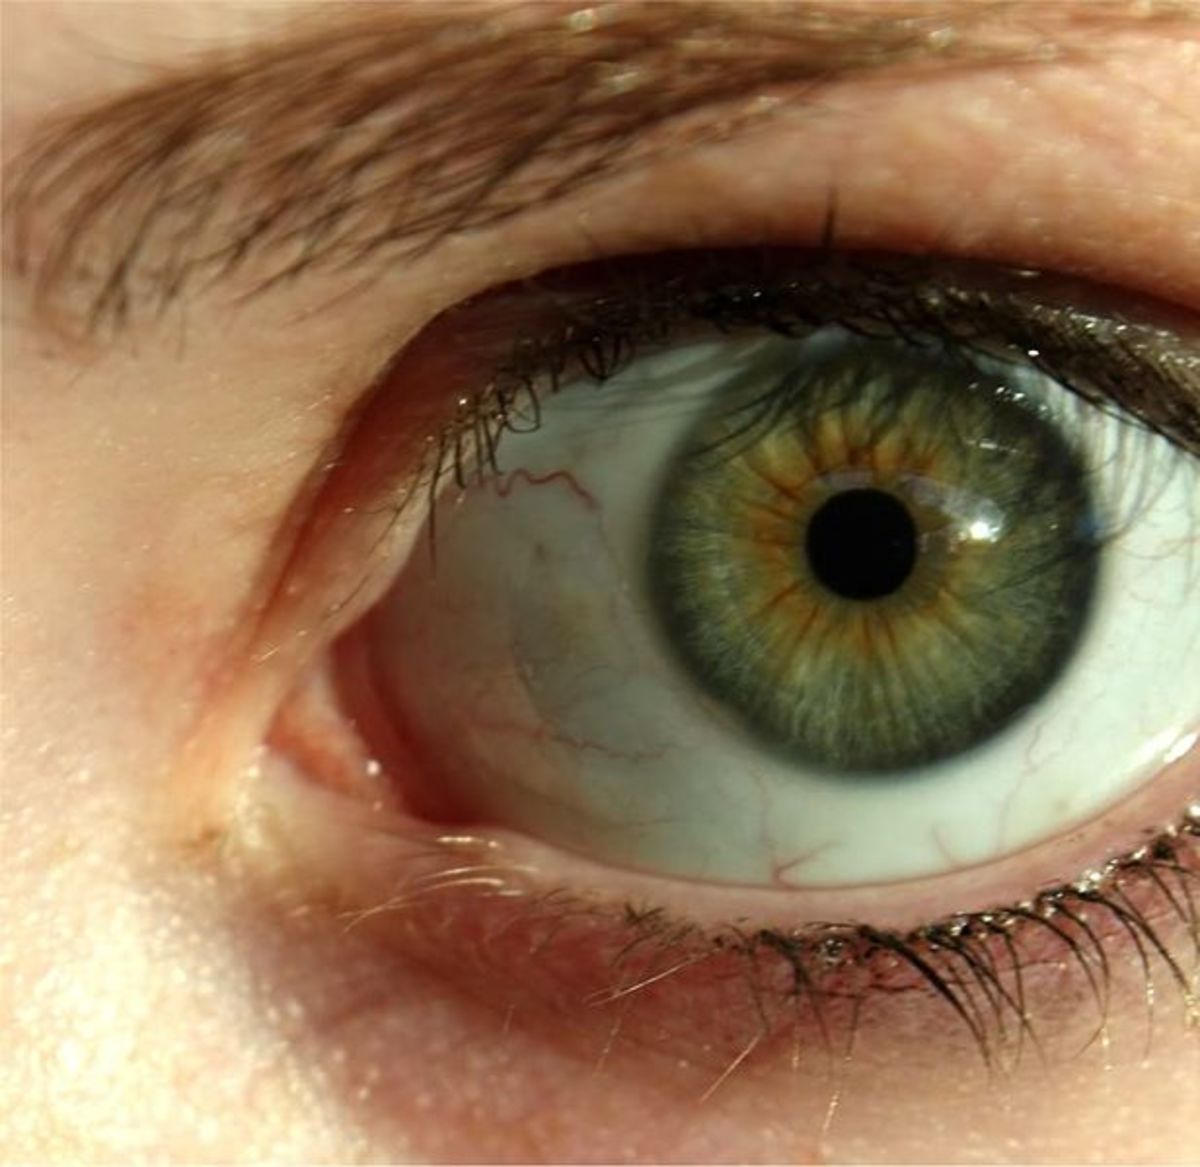 Prominent limbal rings enhance the beauty of the eye.